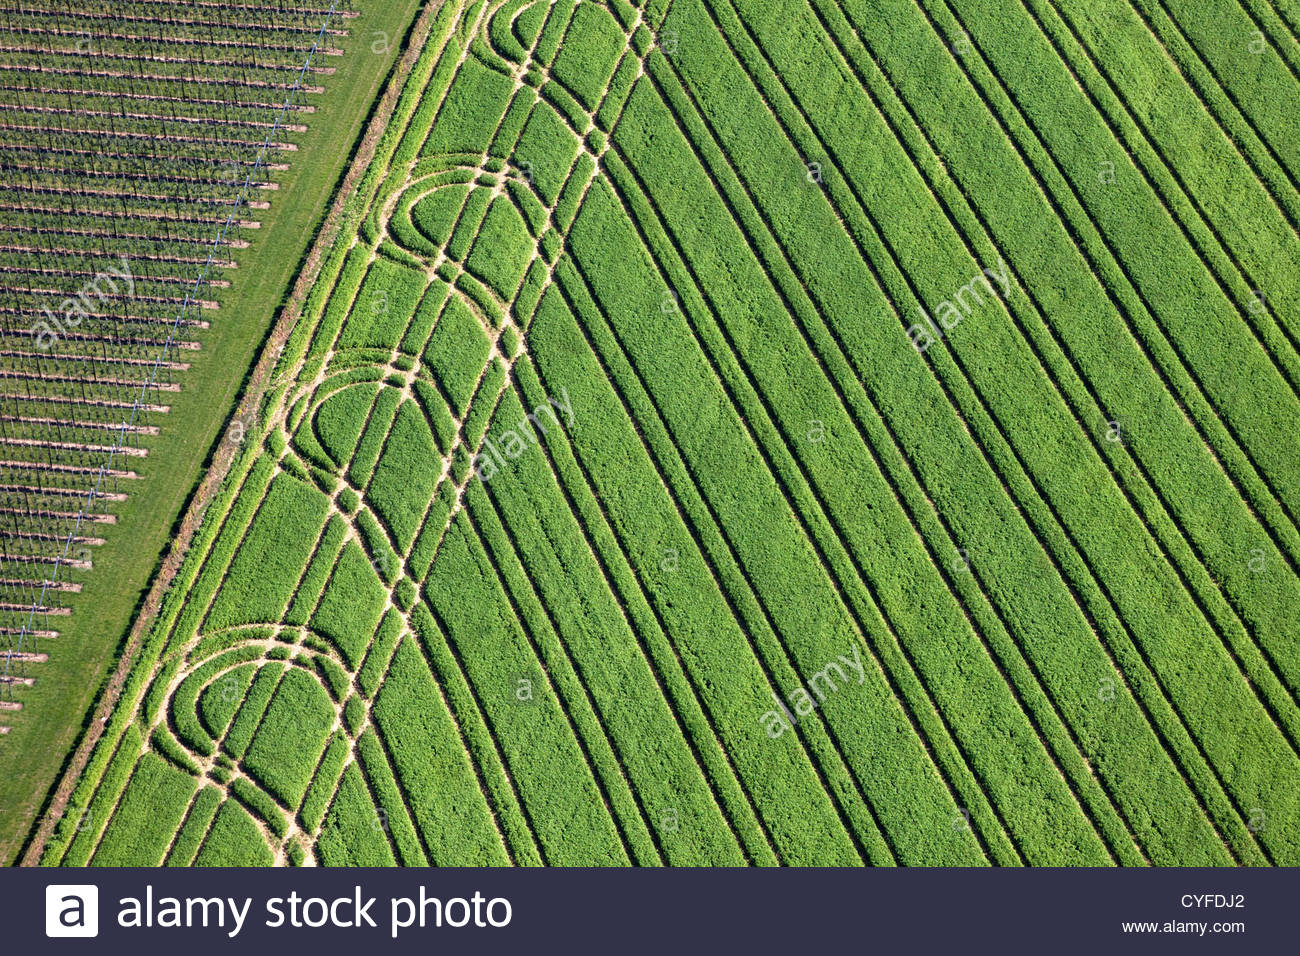 The Netherlands, Valkenburg, Farmland tractor patterns. Aerial. - Stock Image